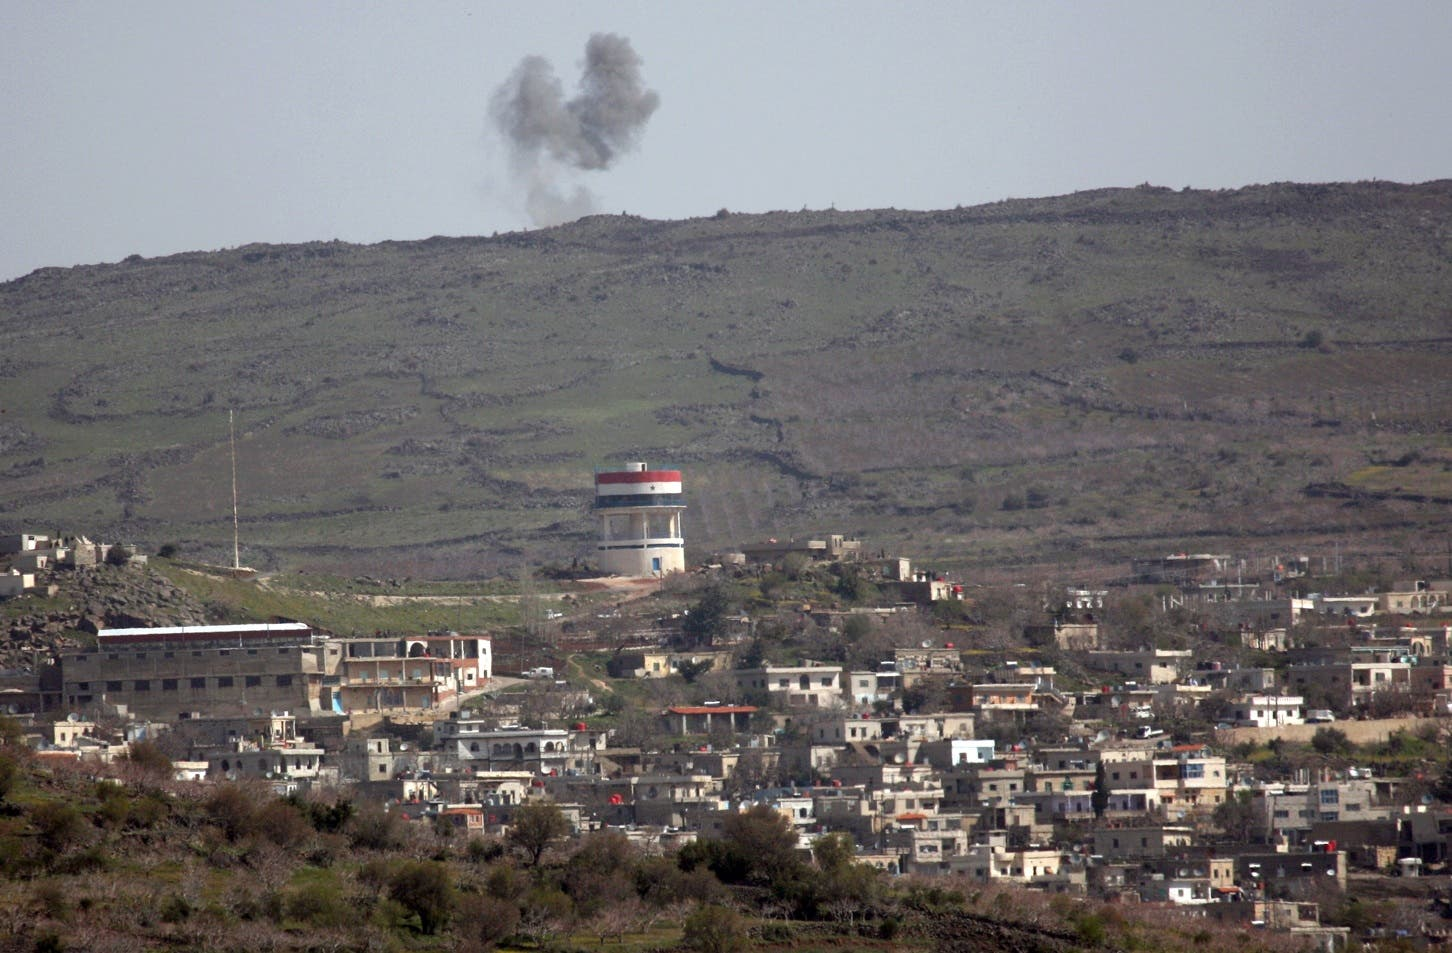 The occupied Golan Heights has been the scene of the disagreement between Israel and Syria.